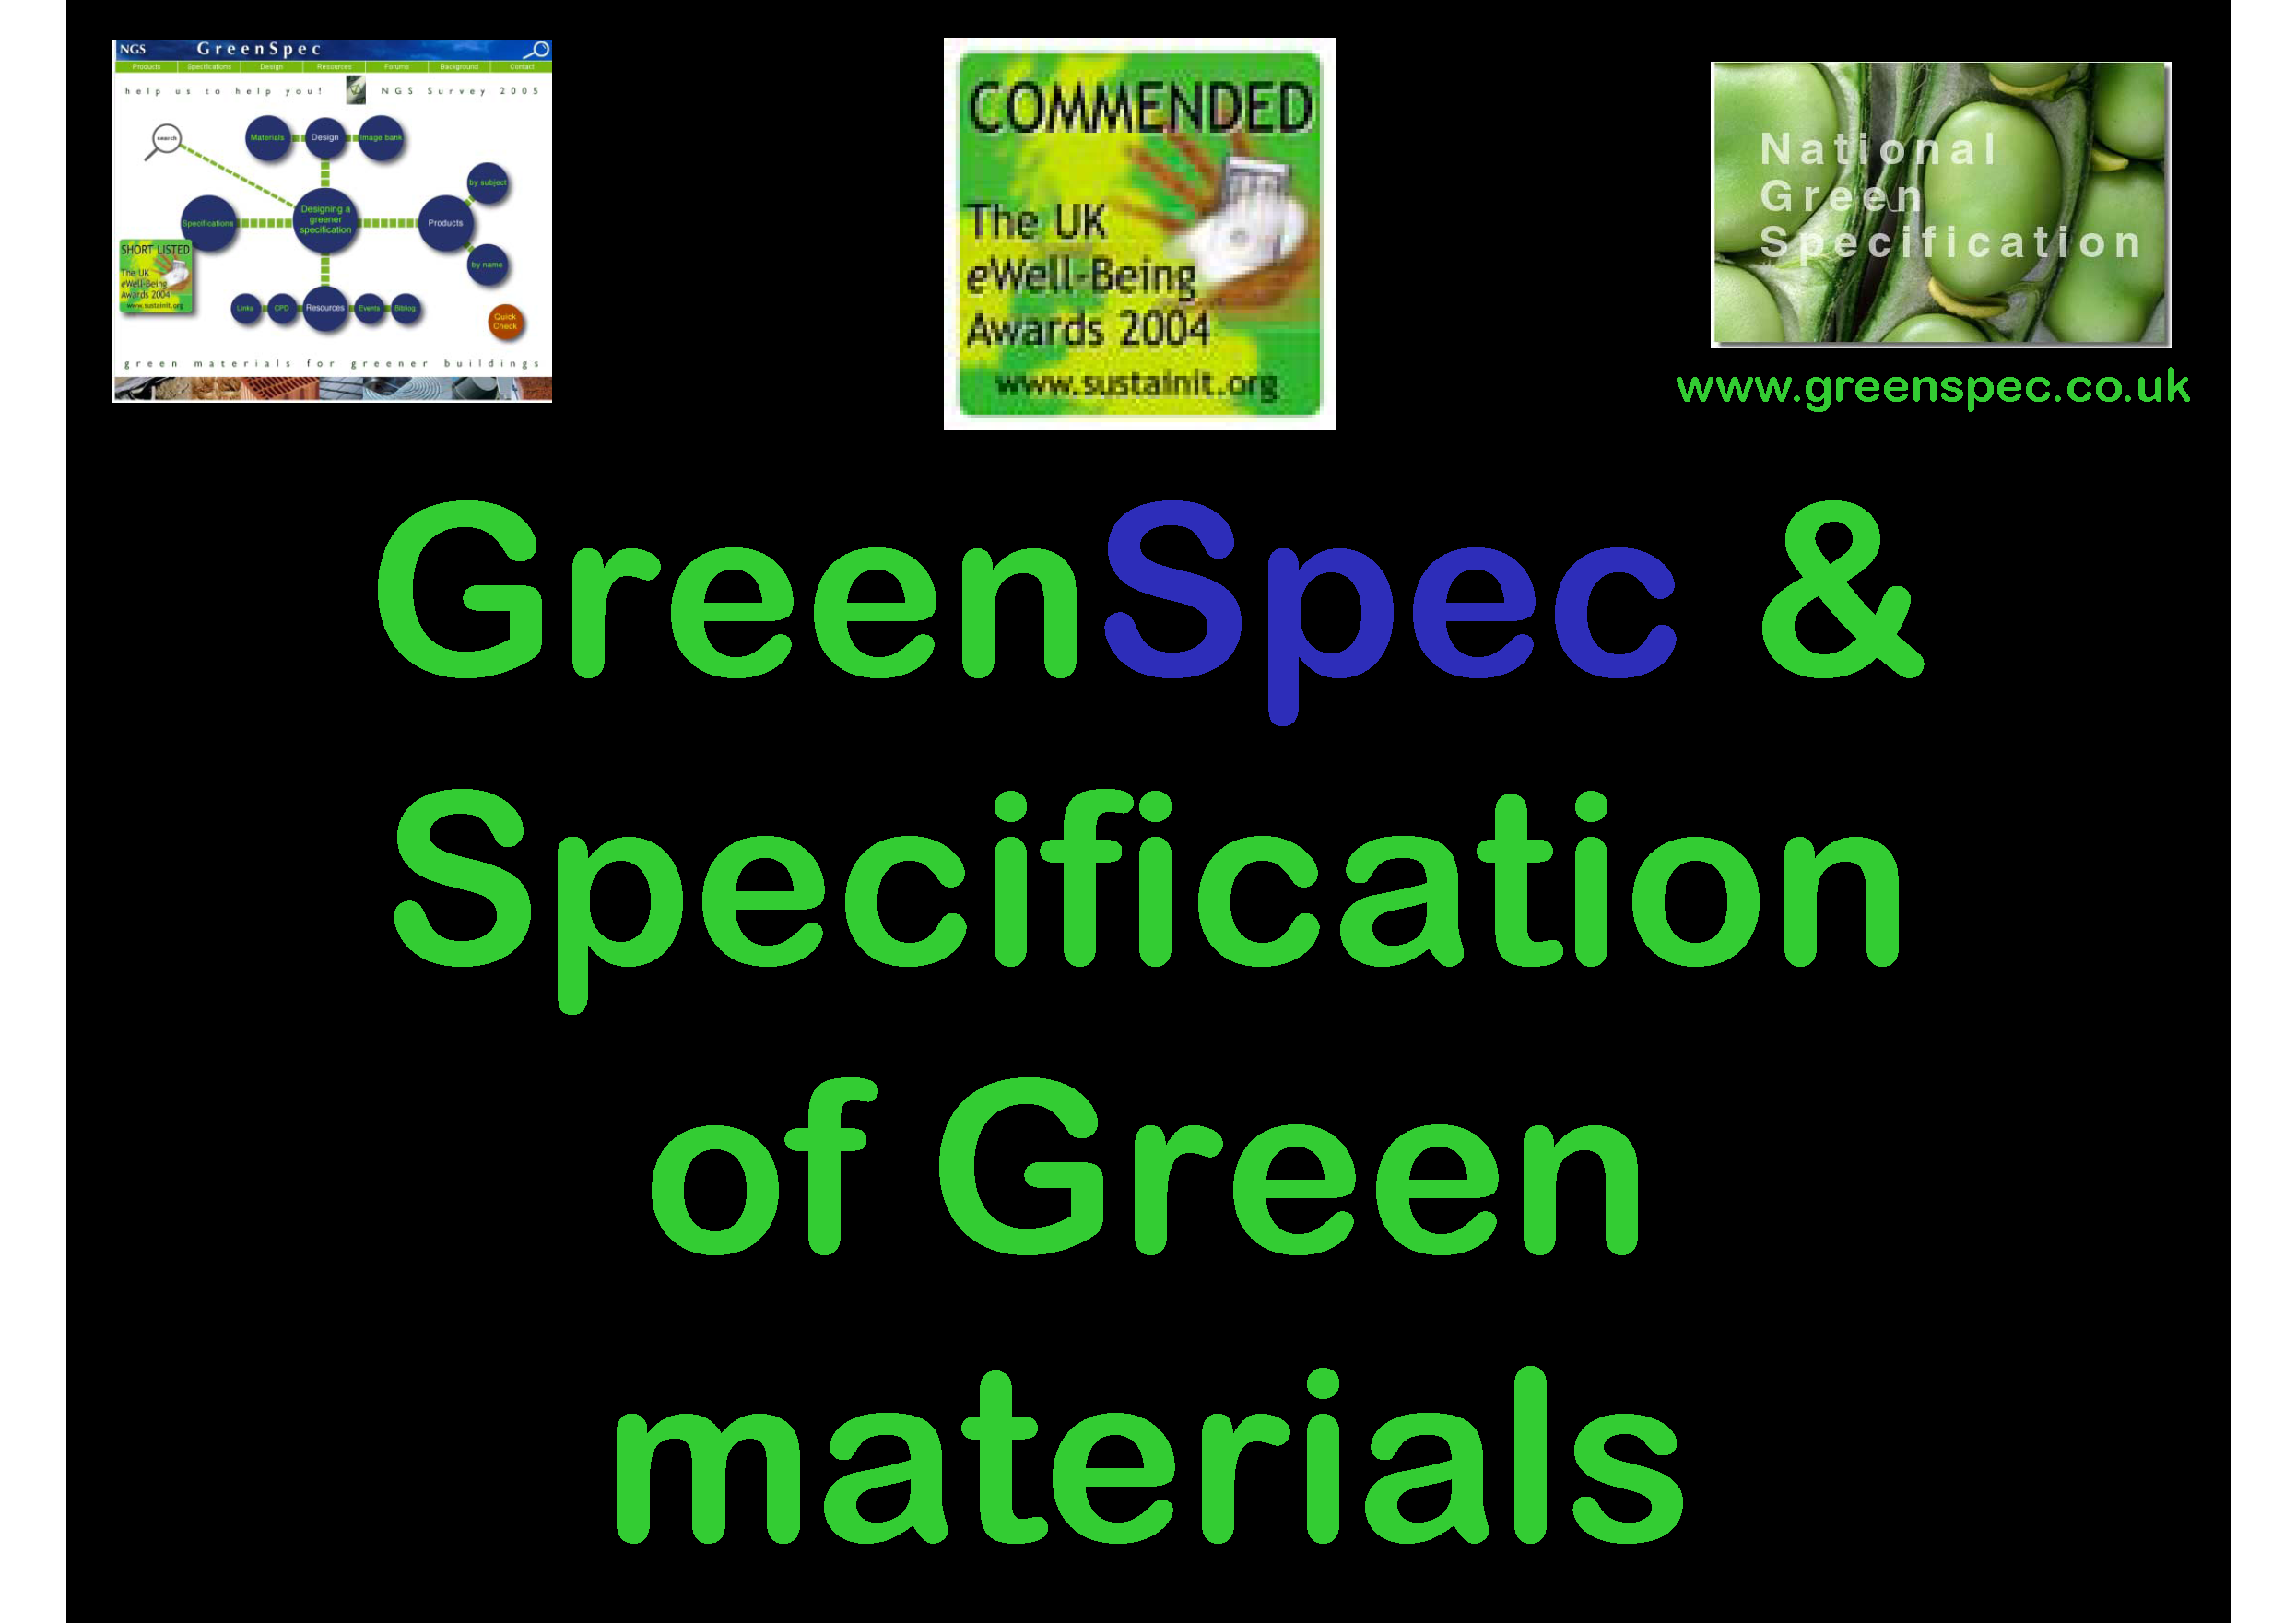 SpecificationGreenMaterials.png